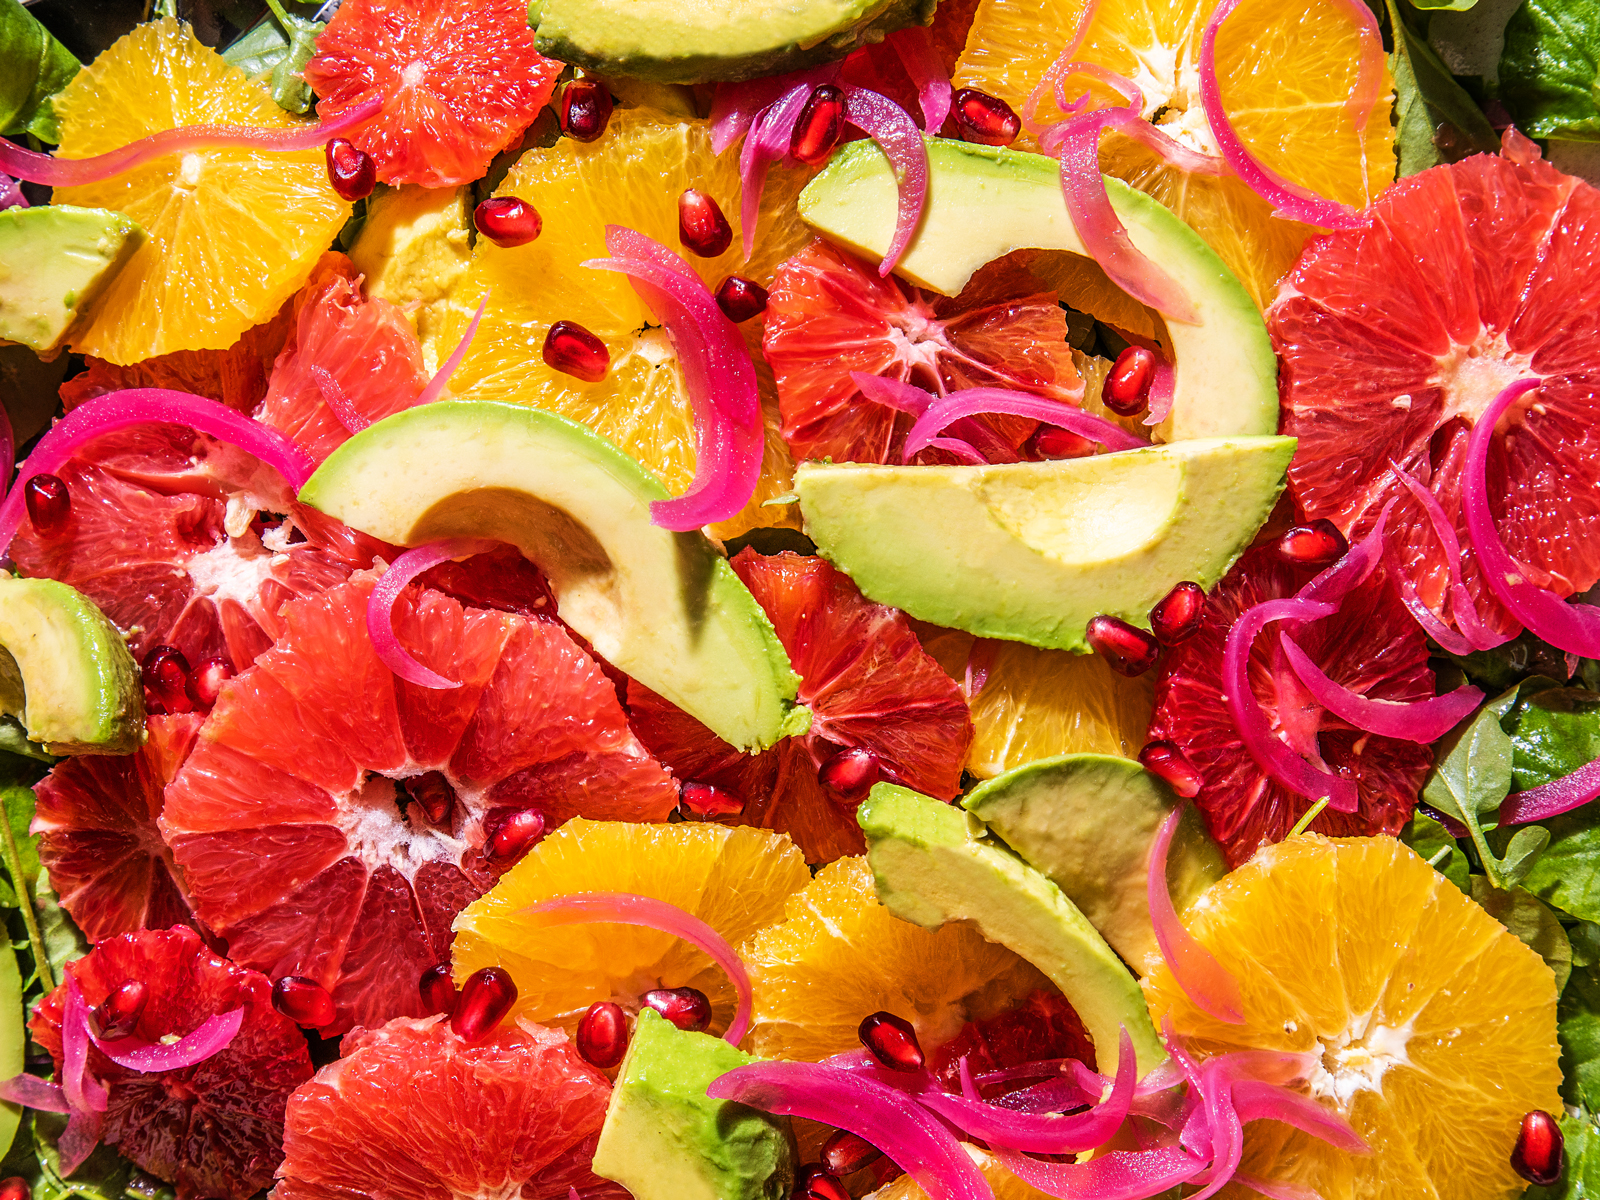 Citrus and Avocado Salad with Pickled Red Onions